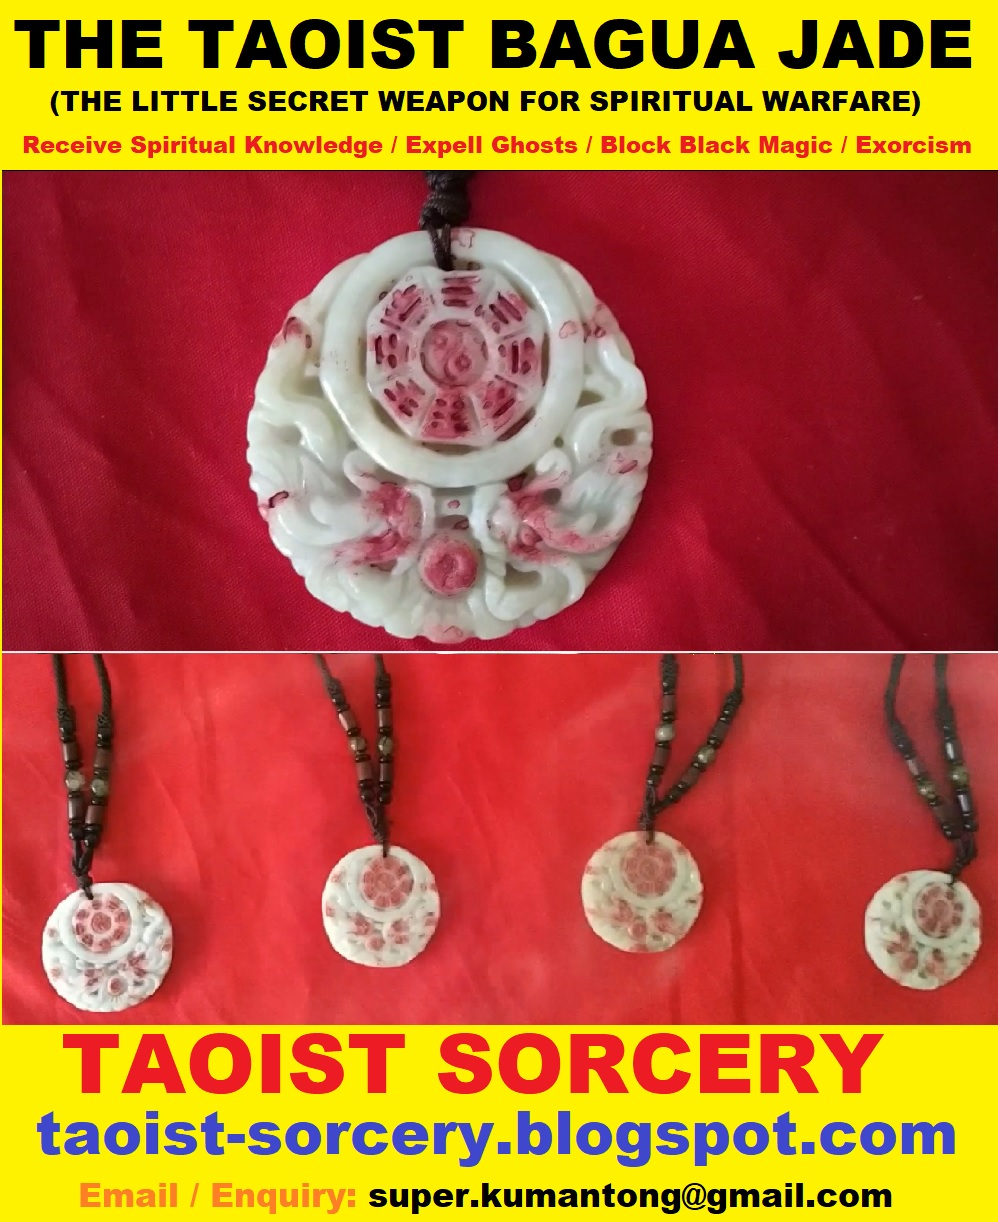 TAOIST SORCERY: The Taoist Bagua Jade (For expelling ghosts